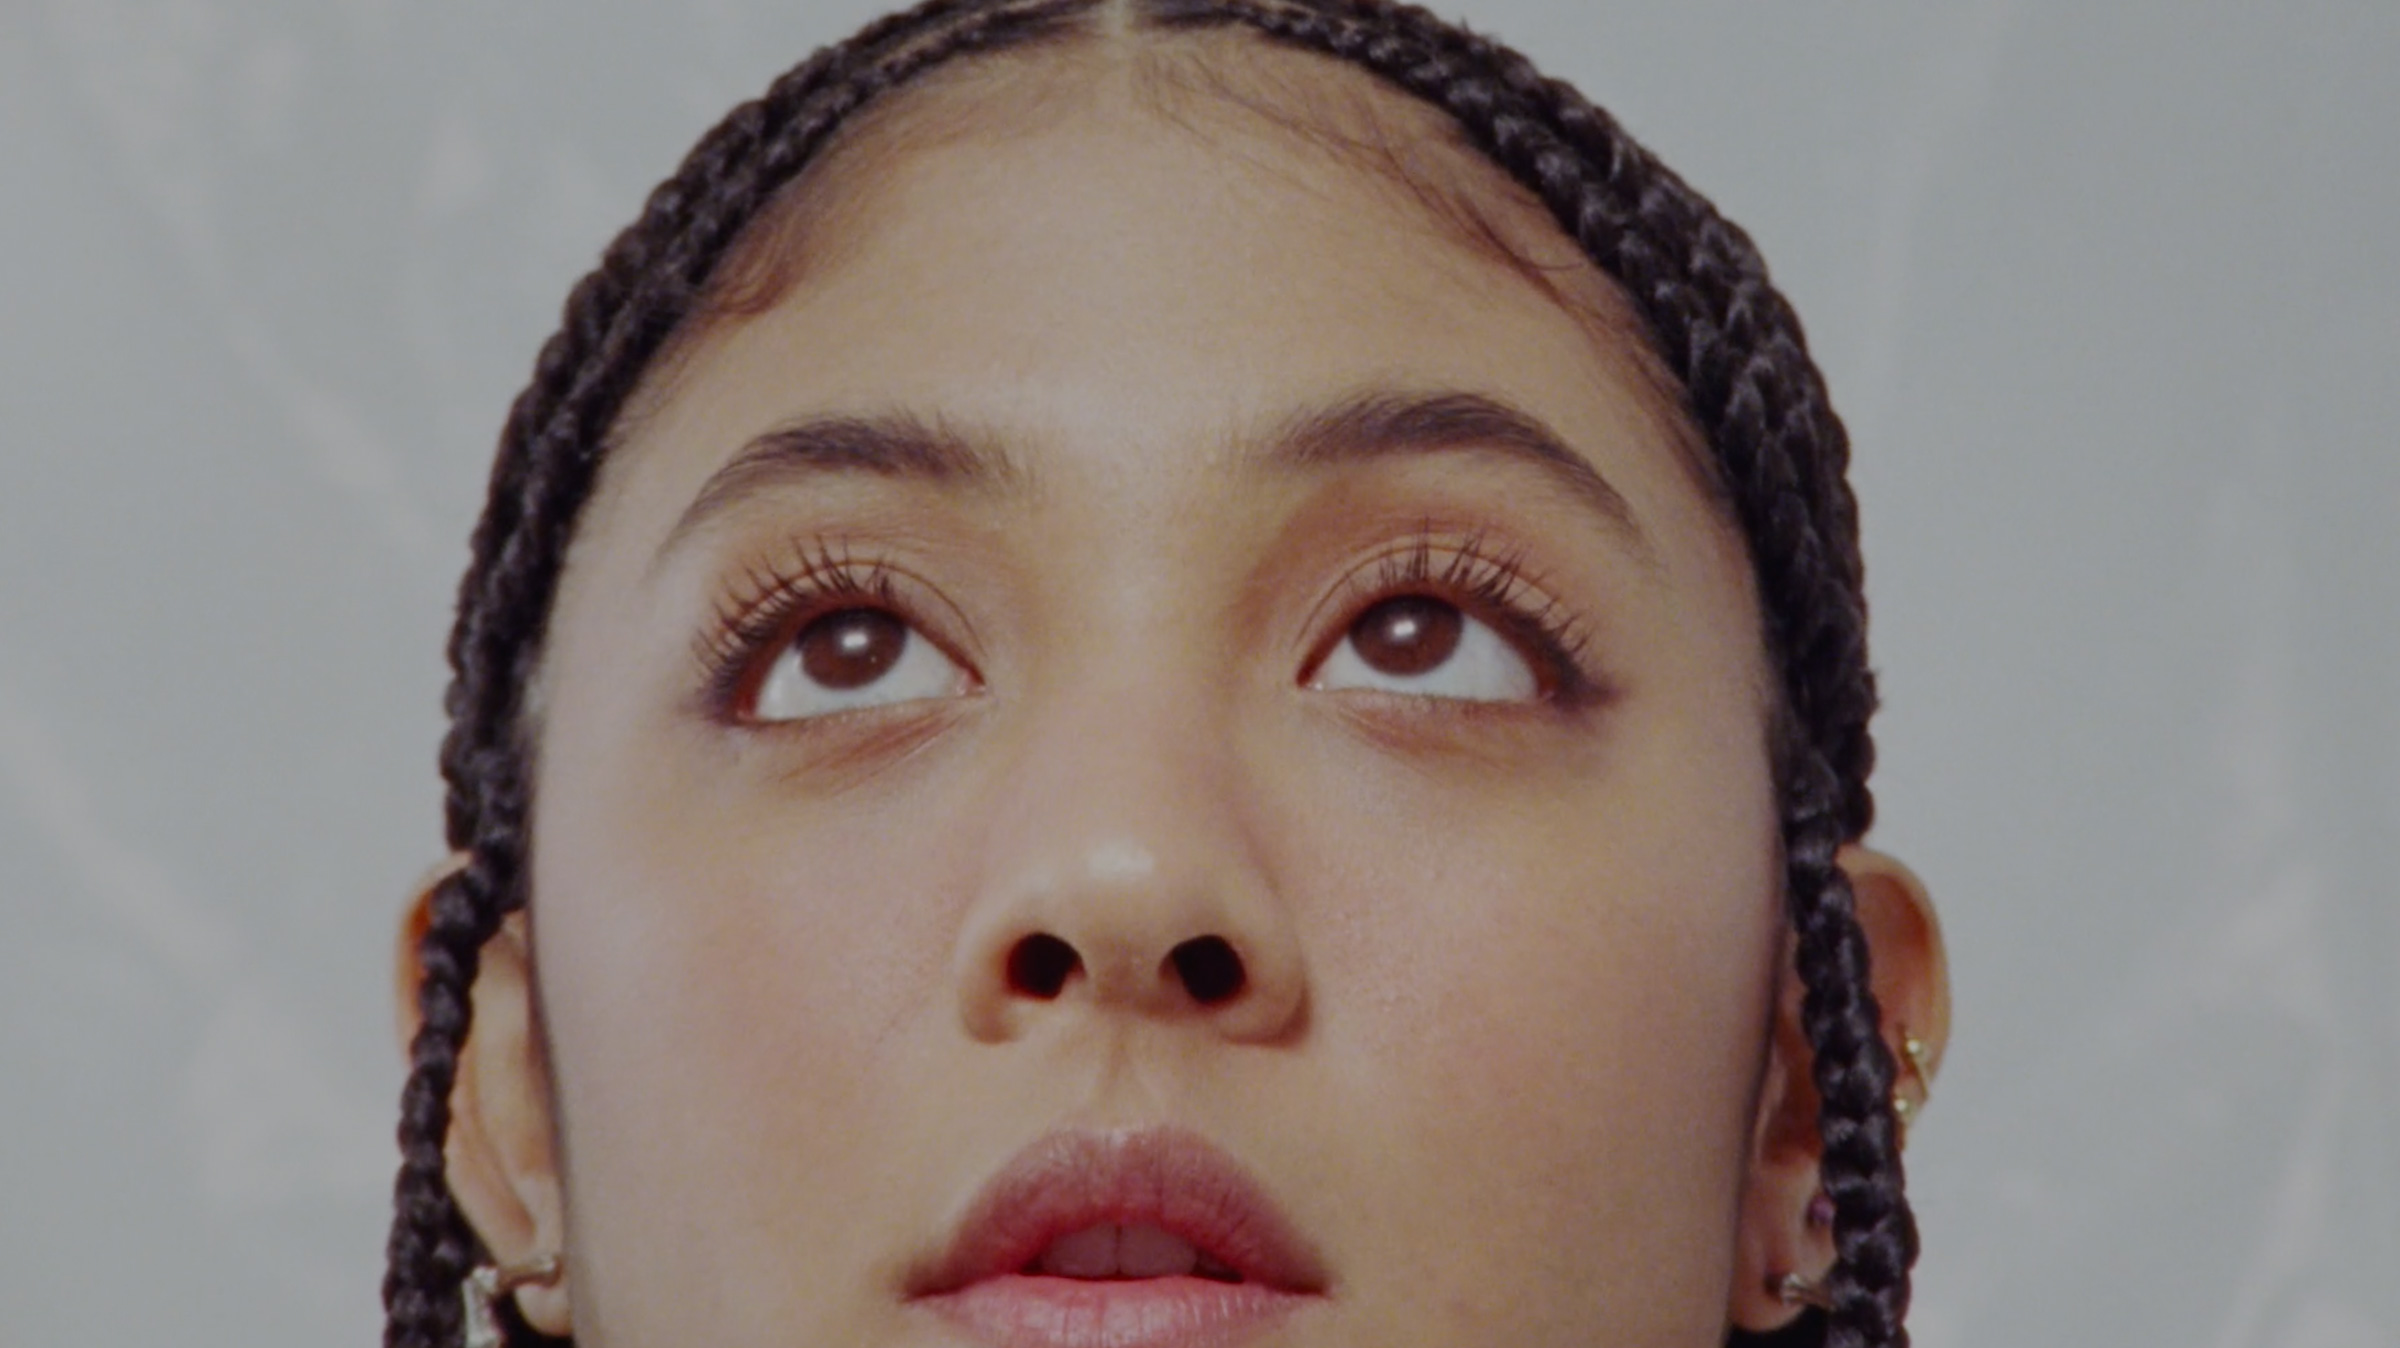 'Fades and Braids,' the short film exploring Asian identity through hairstyles